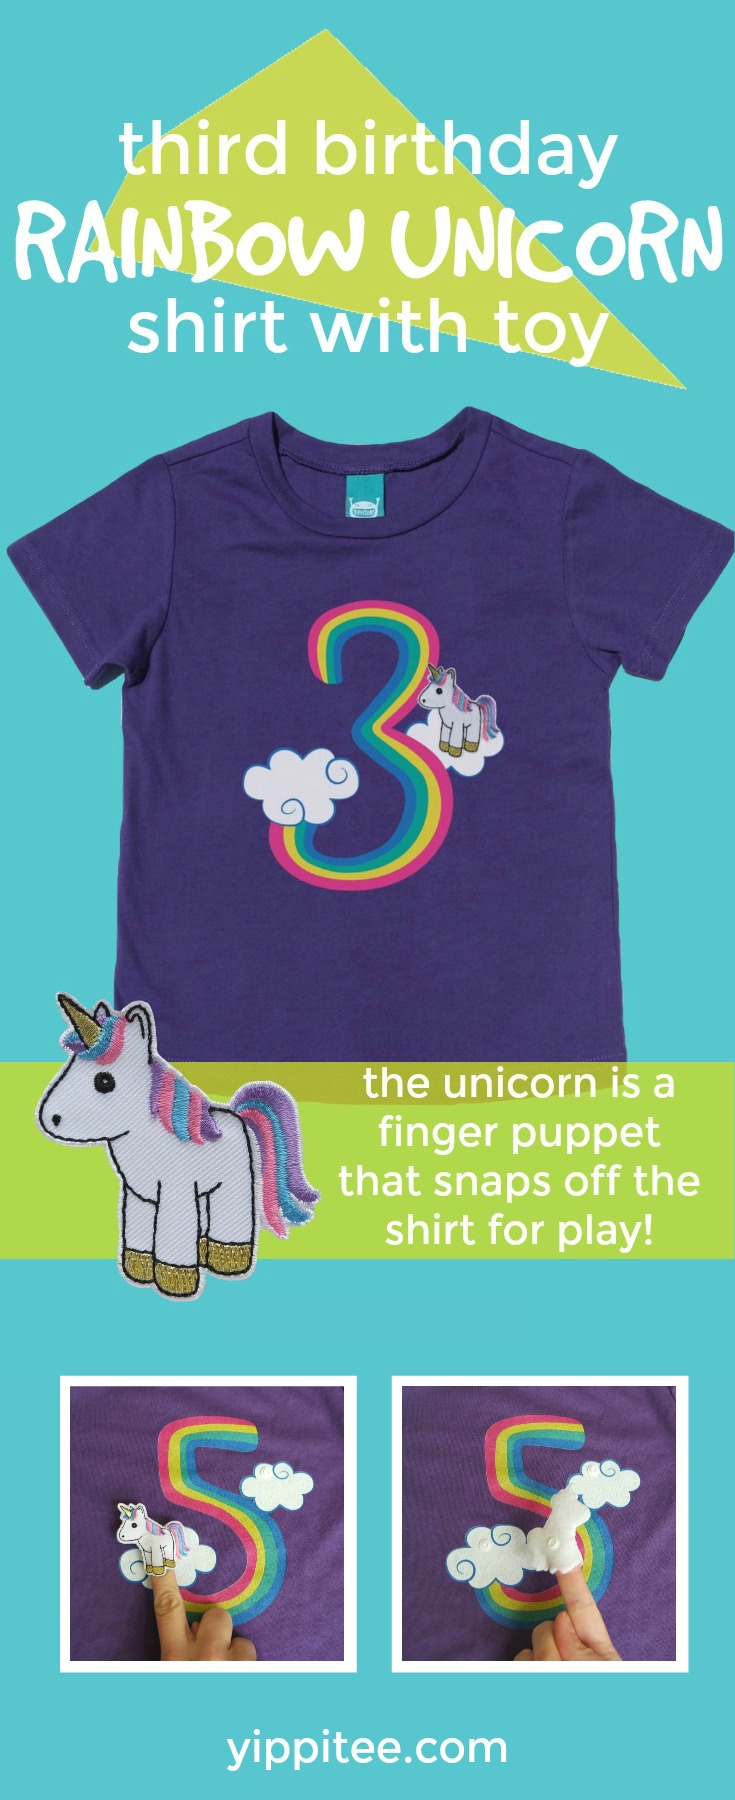 The cutest unicorn birthday shirt ever! A unicorn finger puppet snaps on and off this adorable unicorn 3rd birthday shirt for play on-the-go. Perfect for milestone photos, the birthday party, and any day after. #unicornparty #unicornbirthday #unicornshirt #rainbowunicorn #rainbowbirthday